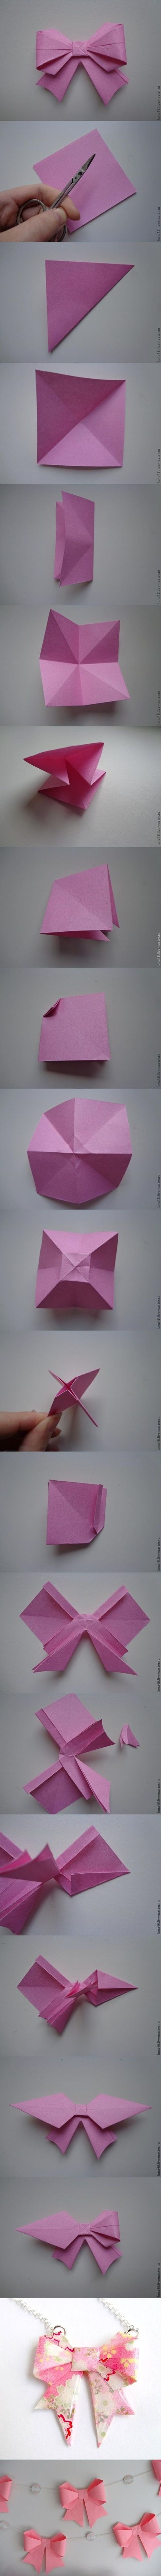 How to DIY Origami Paper Gift Bow.